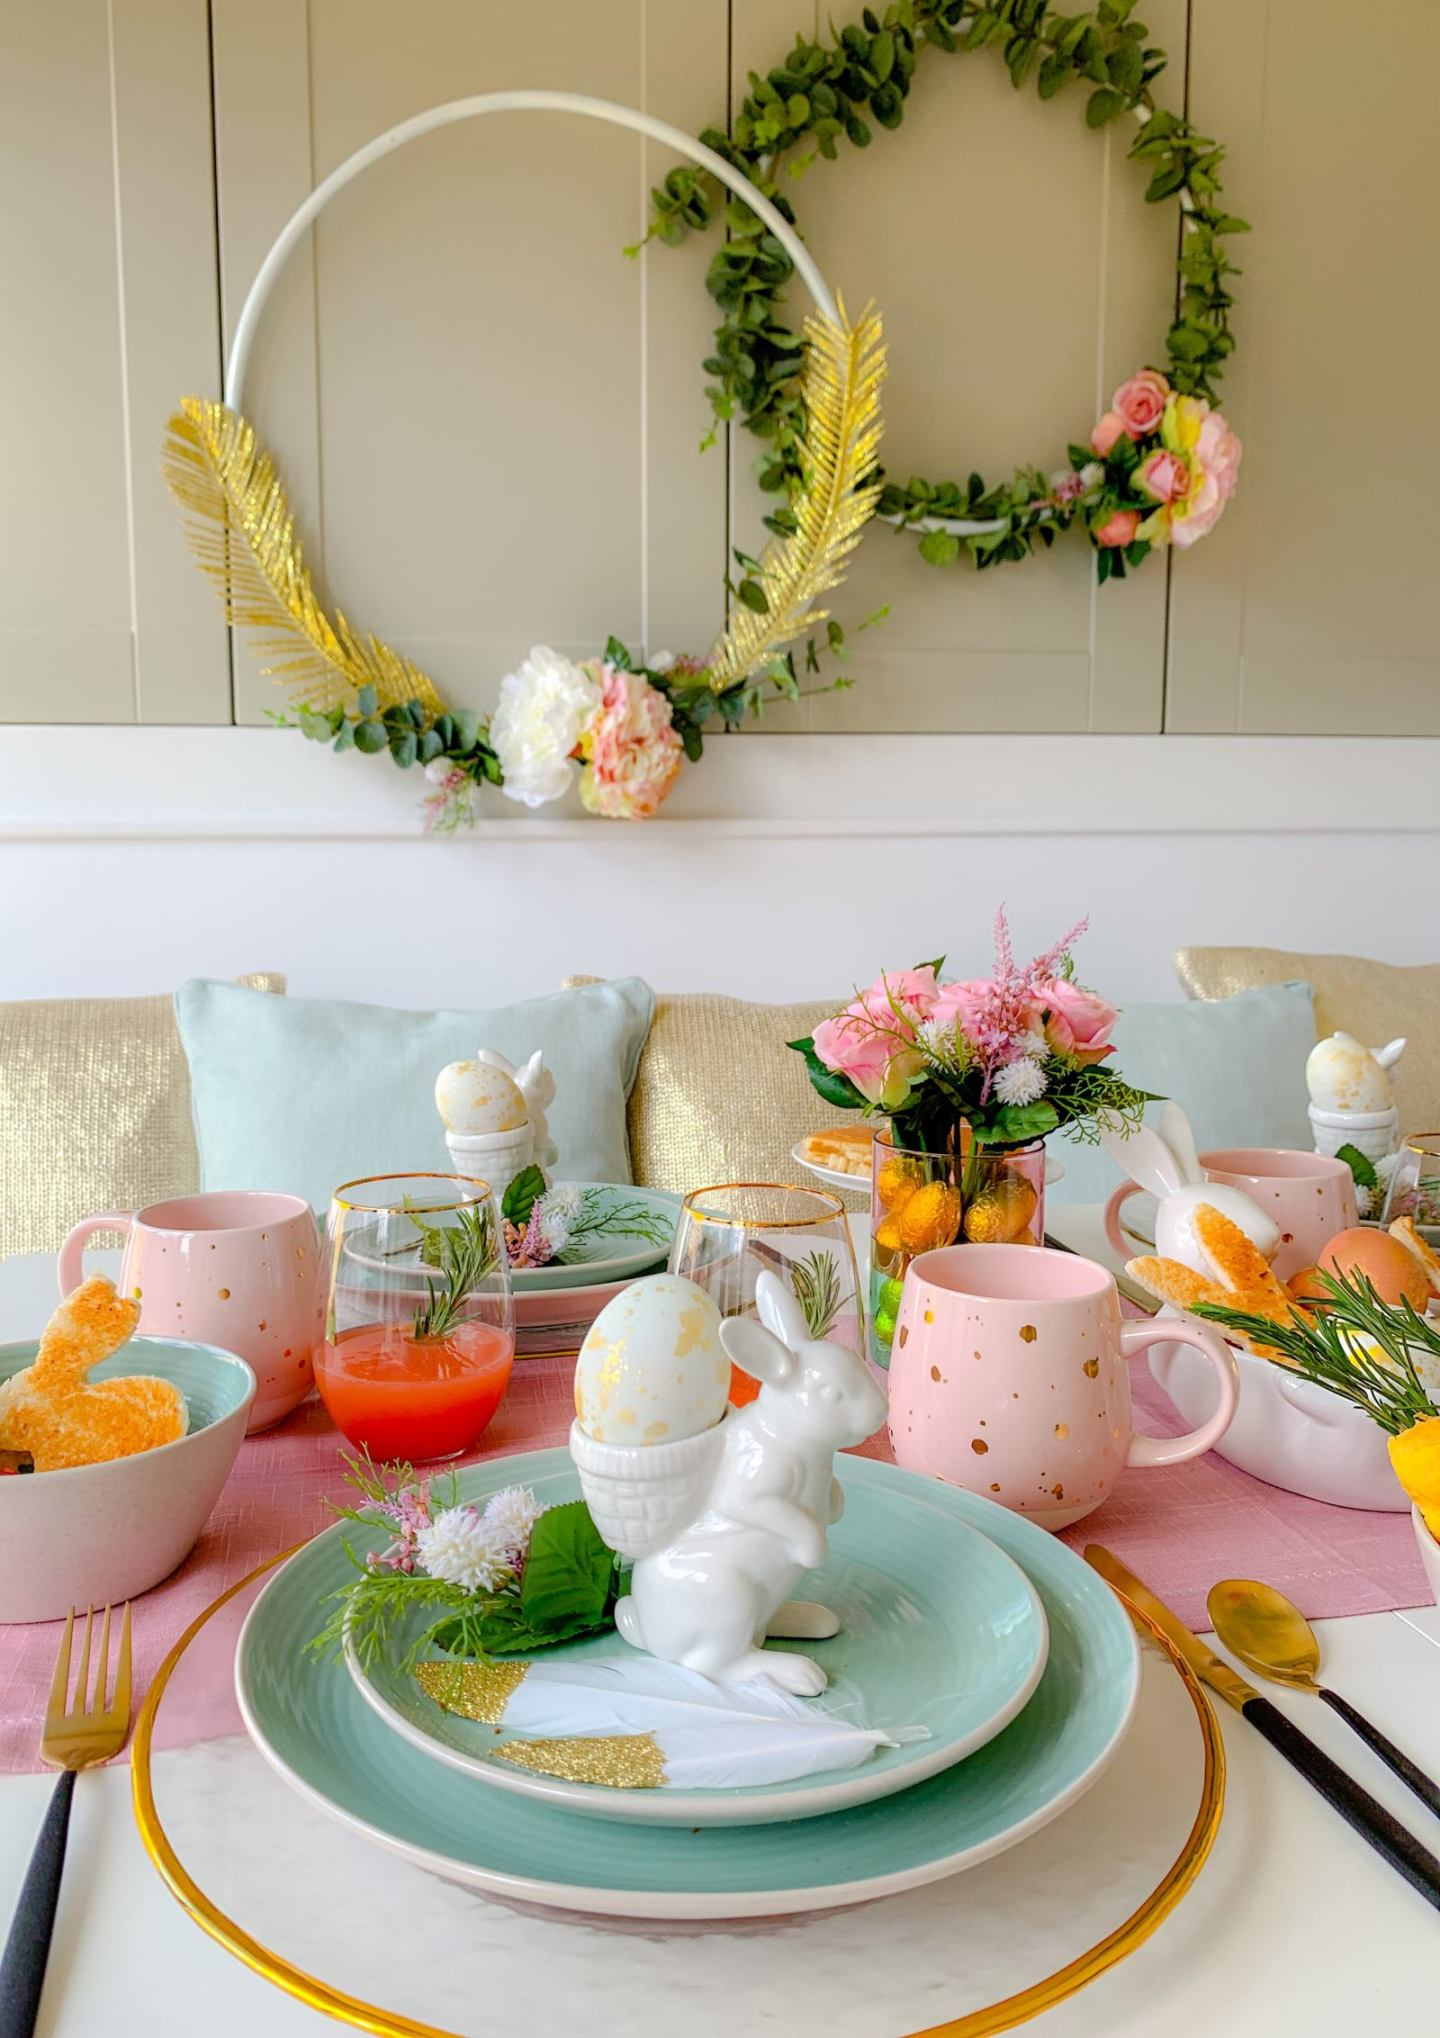 PASTEL EASTER TABLE  (+ DIY FLORAL HOOPS)